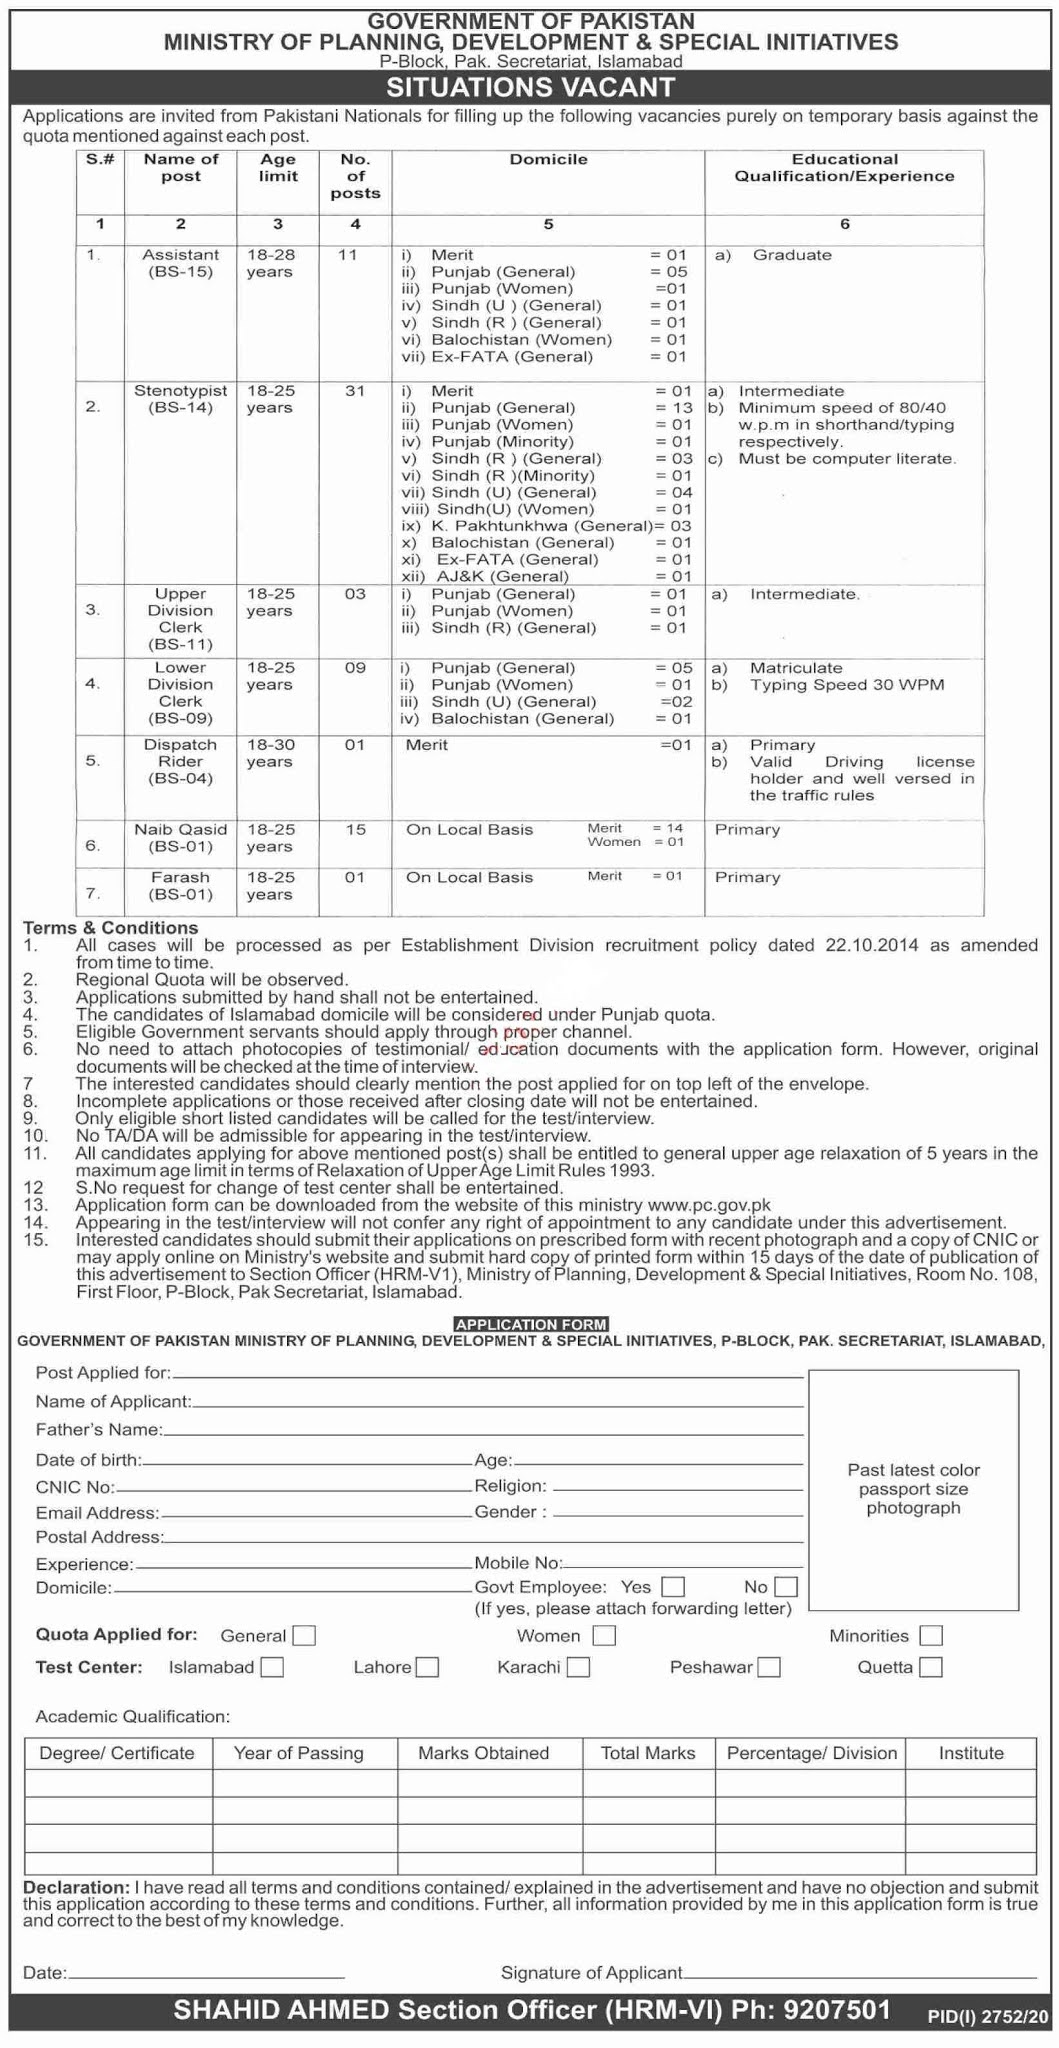 Ministry of Planning Development & Special Initiatives Jobs 2020 for Assistant, Steno Typist, Upper Division Clerk, UDC, Clerk, Lower Division Clerk, LDC, Dispatch Rider, Naib Qasid, Office Boy, Farash